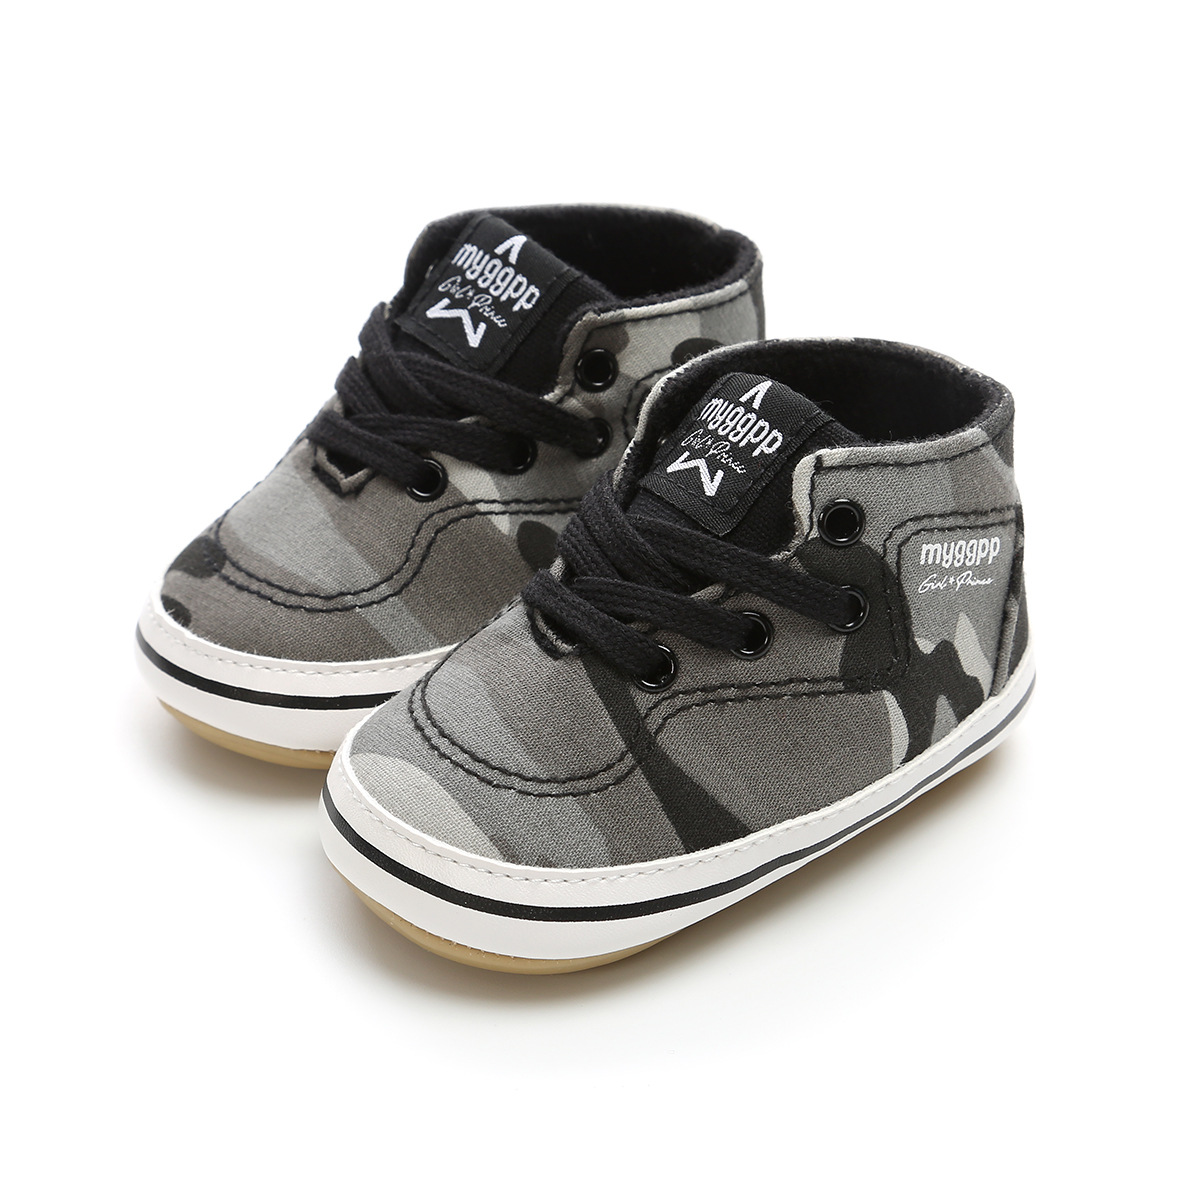 Baby Toddler Shoes Black/grey Camouflage Canvas Girl Boy First Walkers Sneakers Hot Moccs Fashion Newborn Baby Shoes Bebe.CX62B